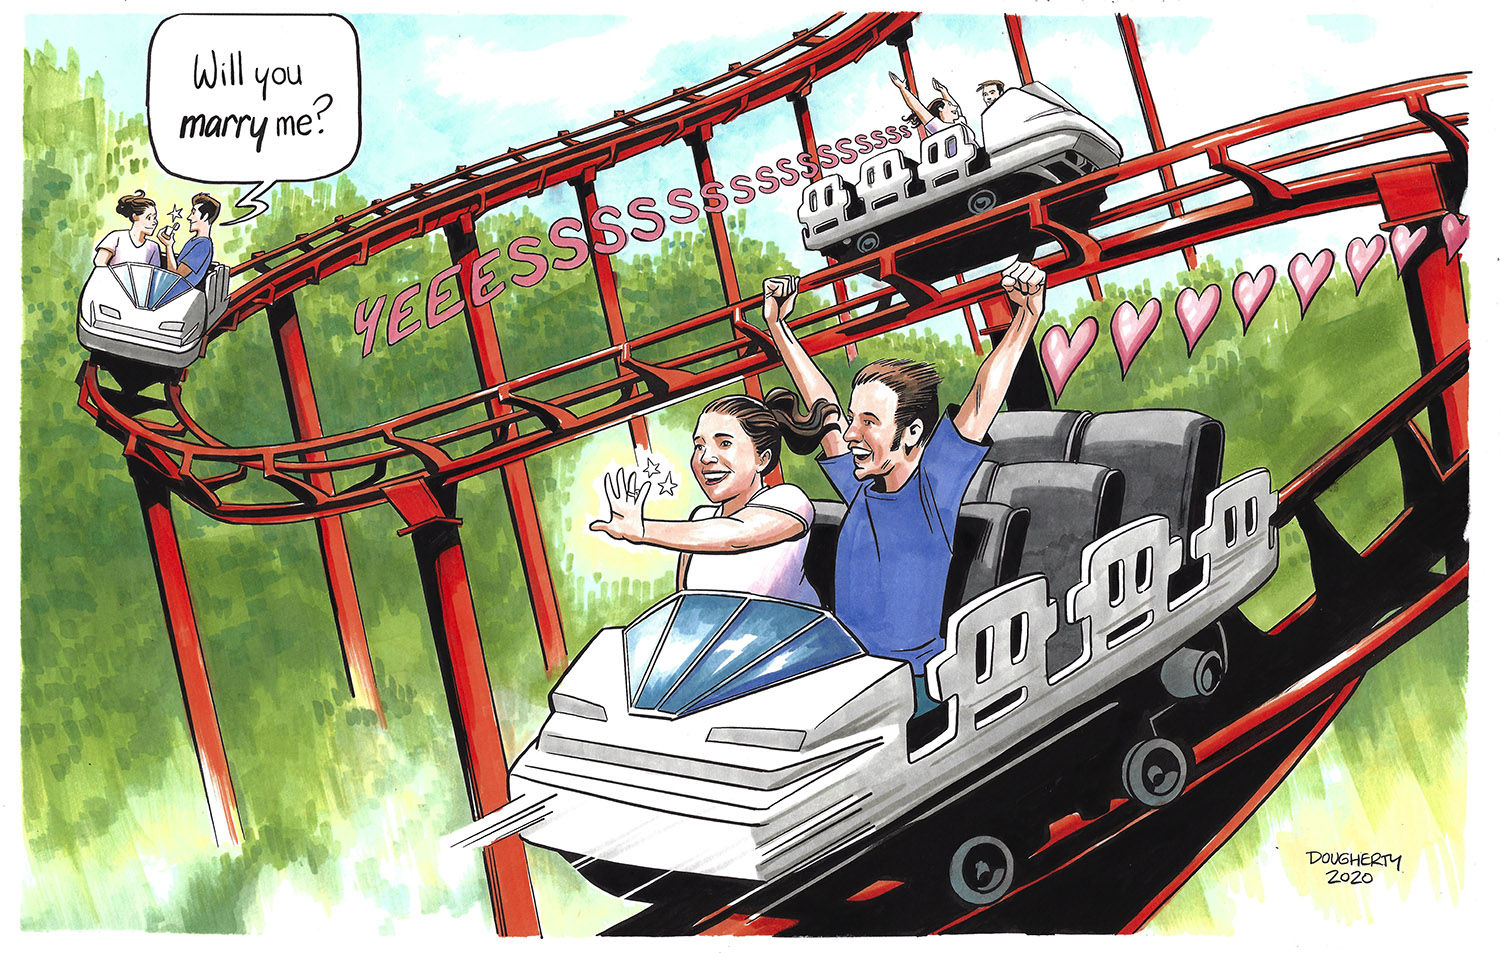 Rollercoaster Proposal